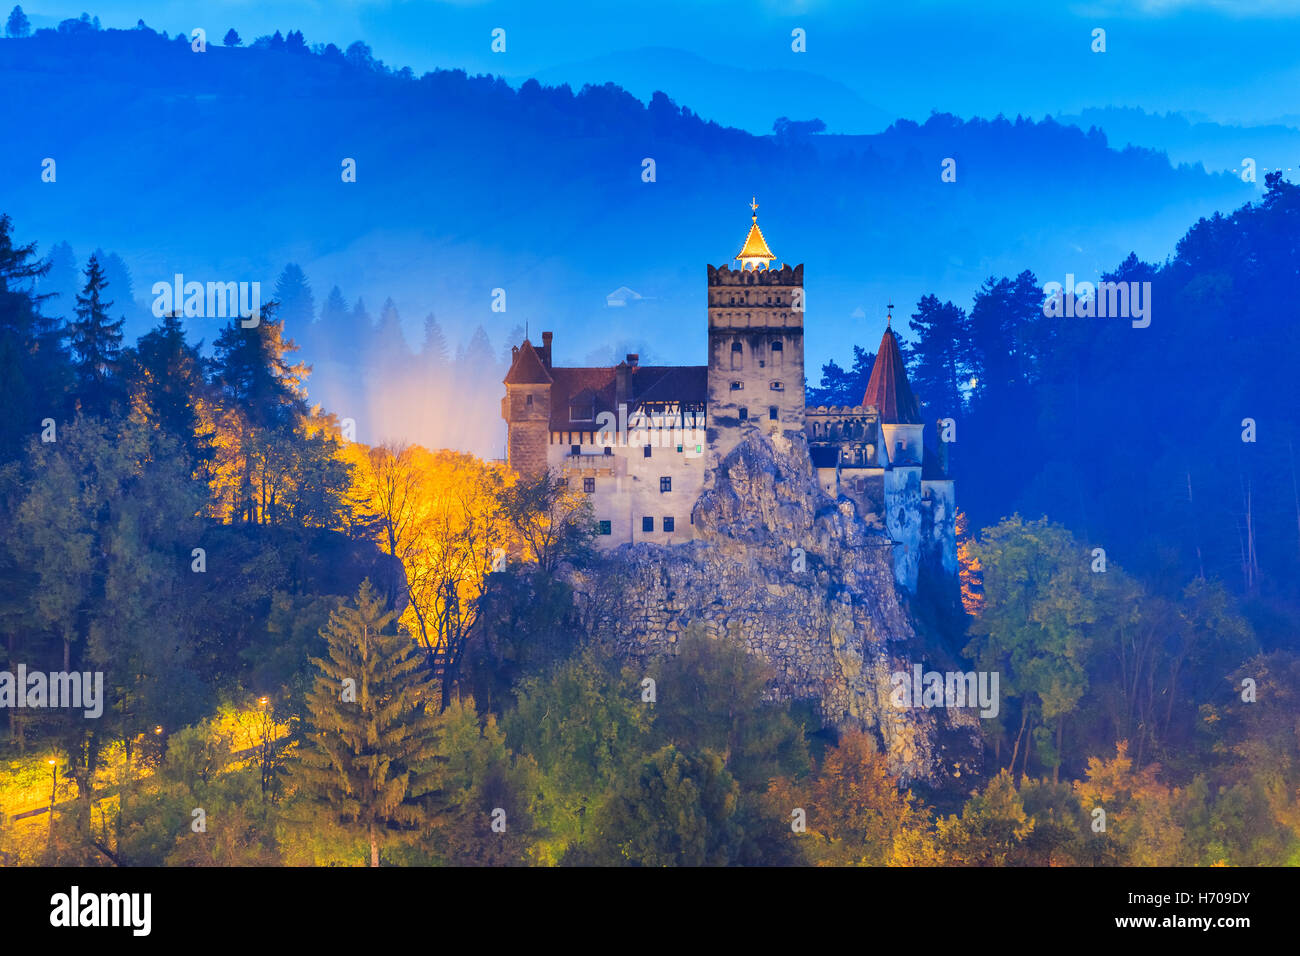 Brasov, Transylvania. Romania. The medieval Castle of Bran. - Stock Image